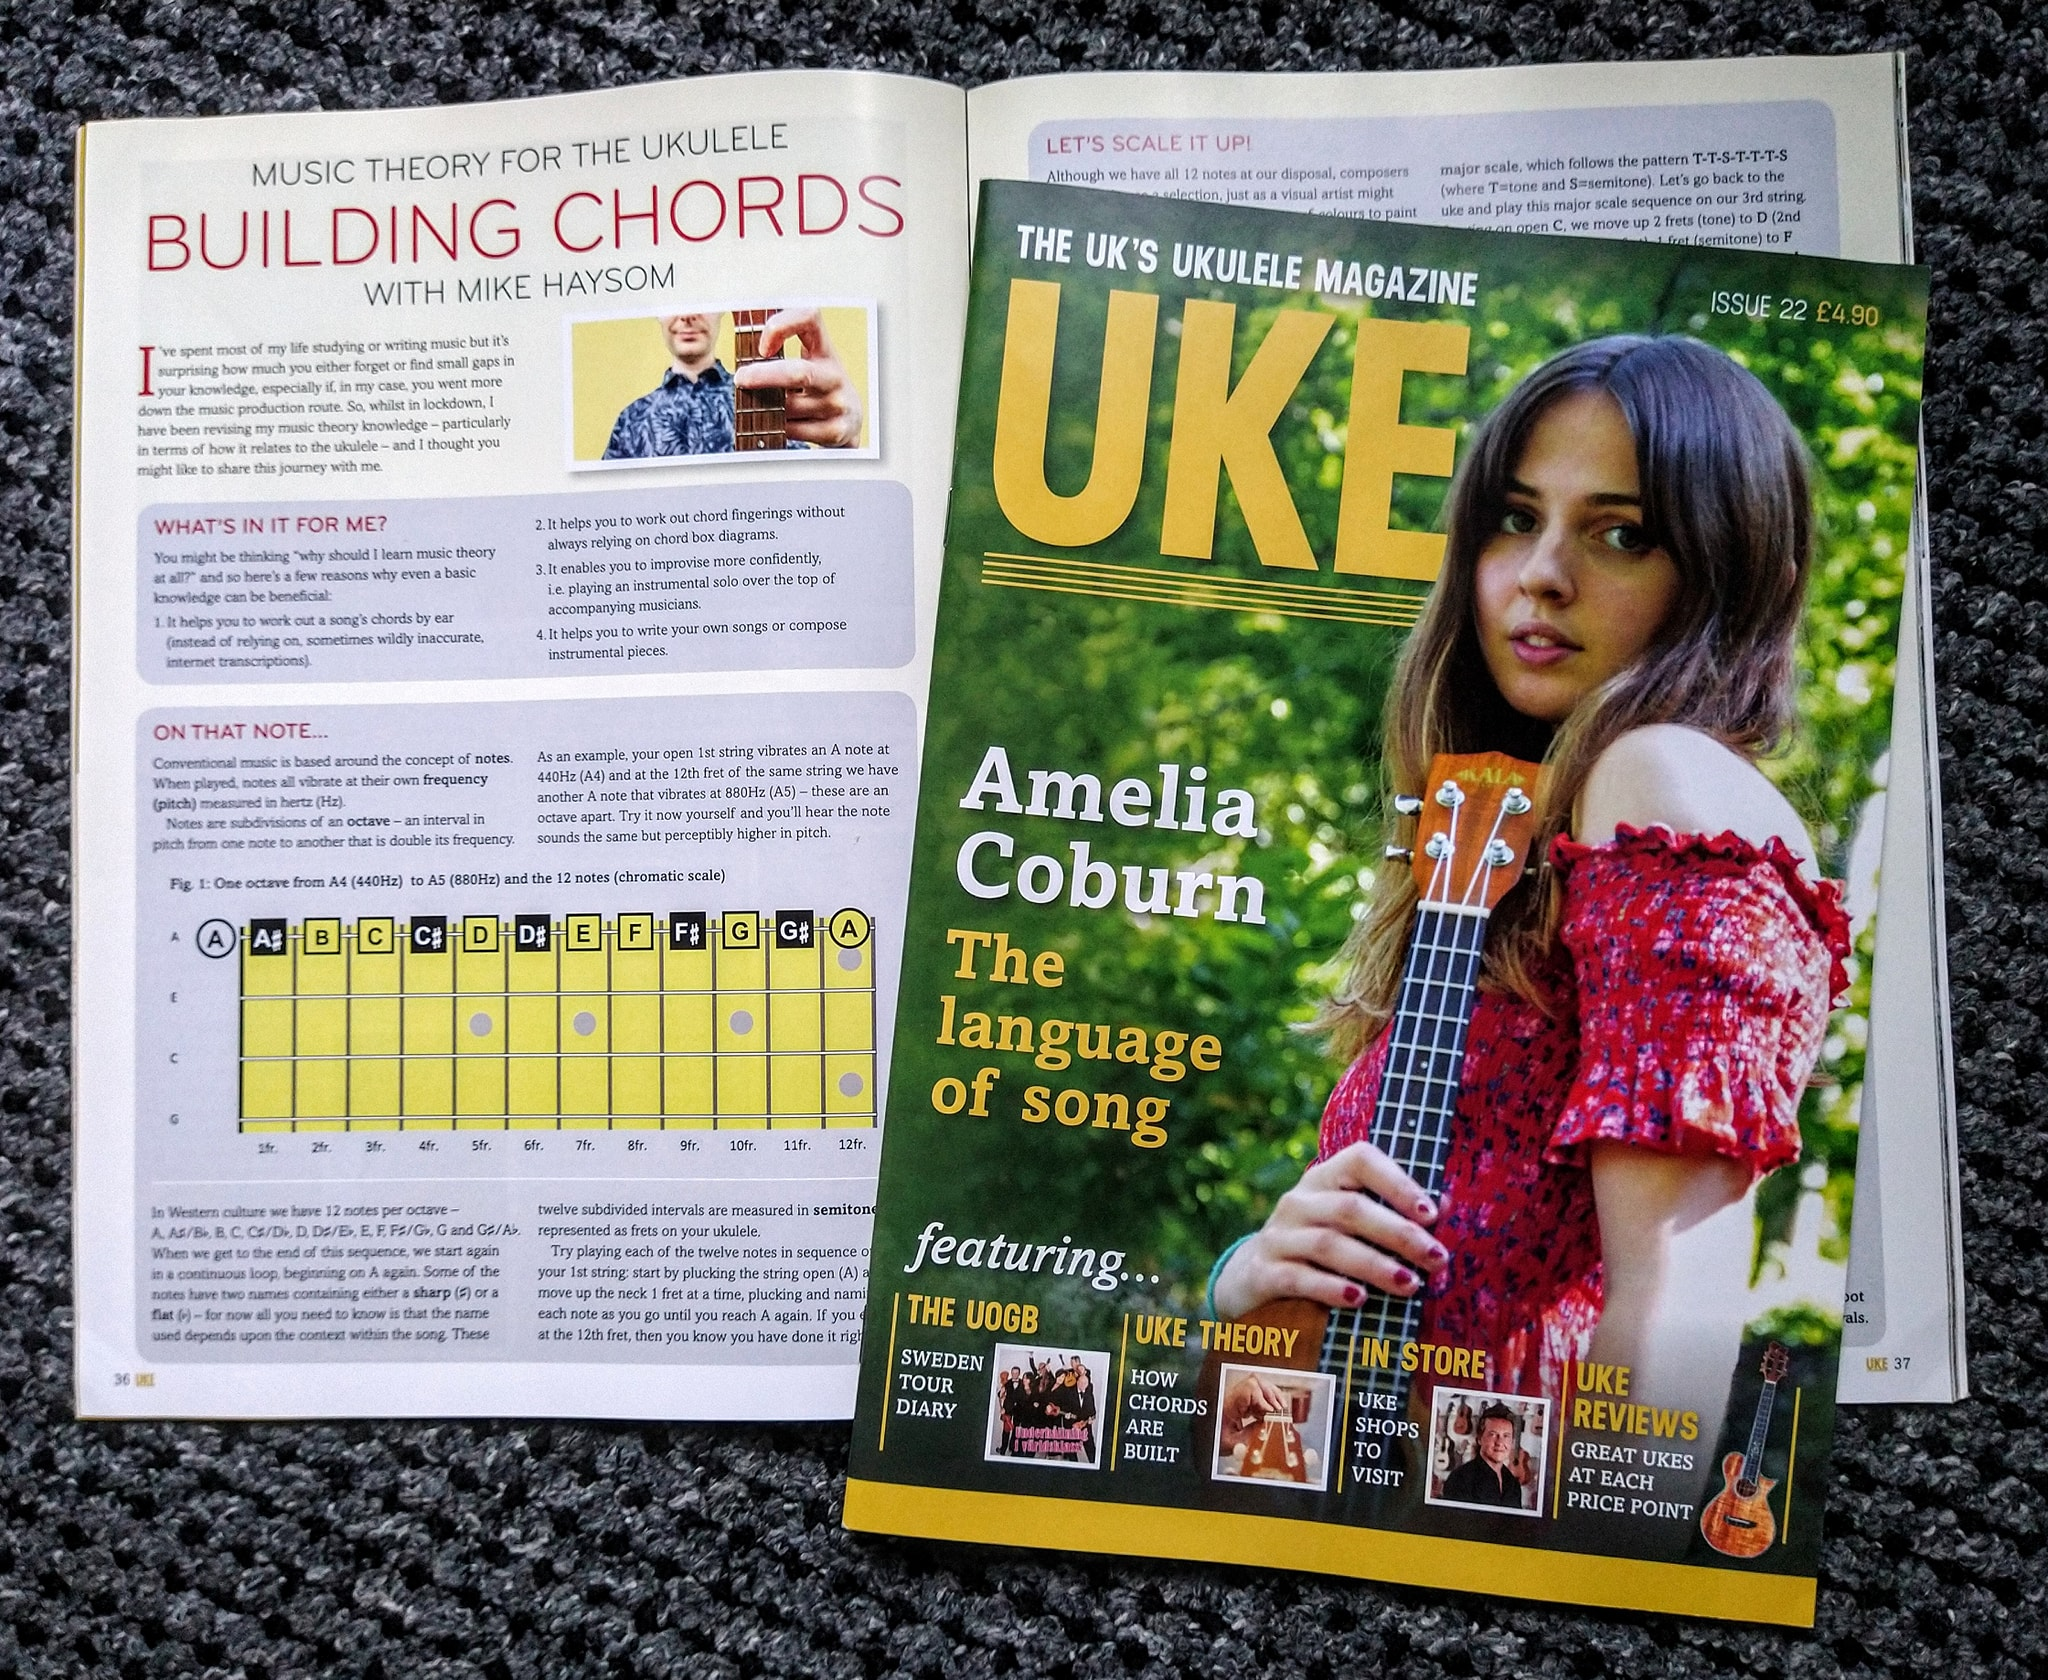 My First Article Published in UKE Magazine!